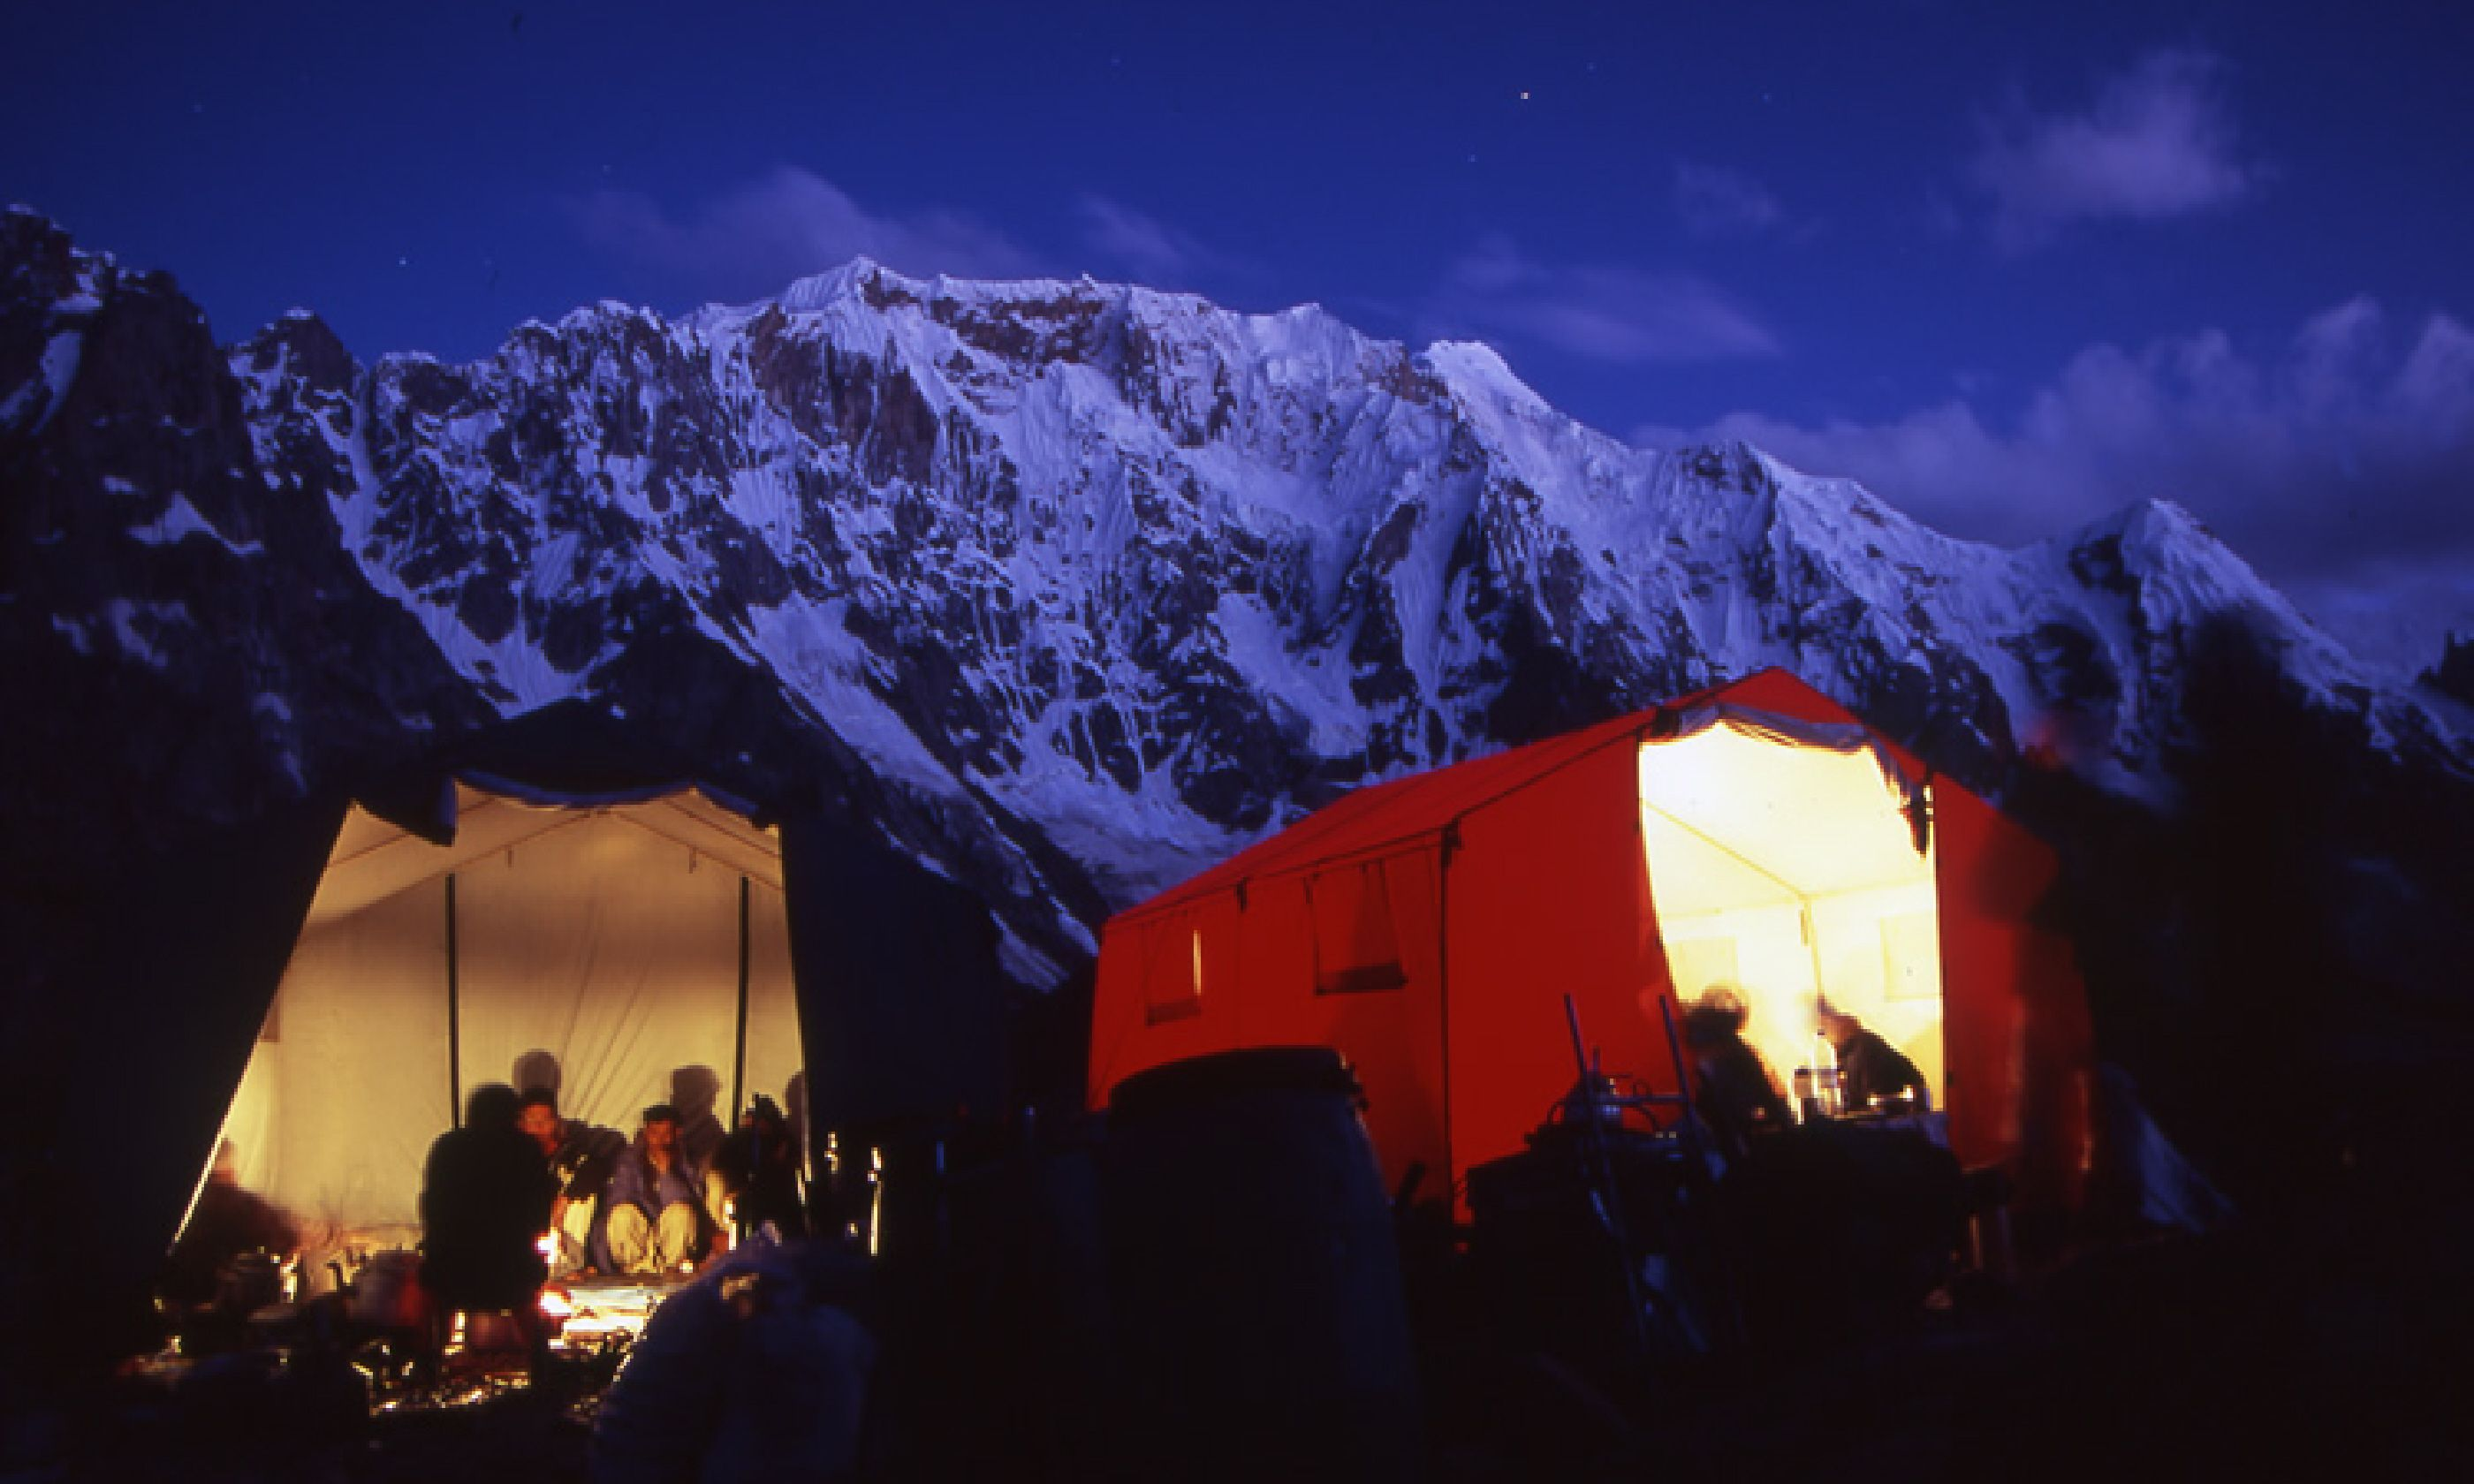 Camp at Gore II by night, (Photo: J Turner / Mountain Kingdoms)